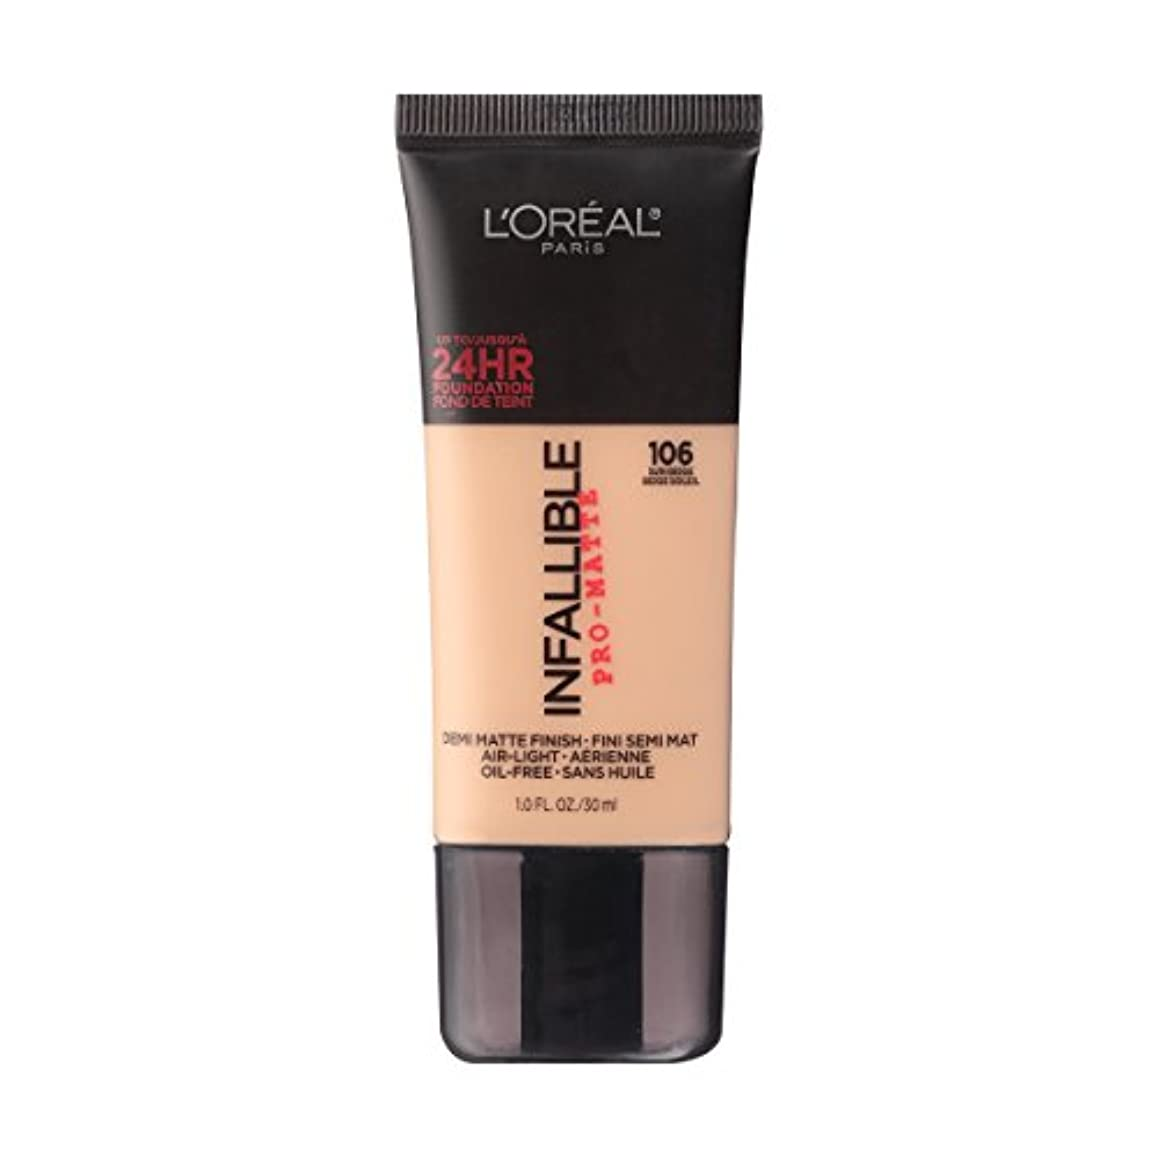 北米分析する混乱させる(3 Pack) L'OREAL Infallible Pro-Matte Foundation - Sun Beige (並行輸入品)